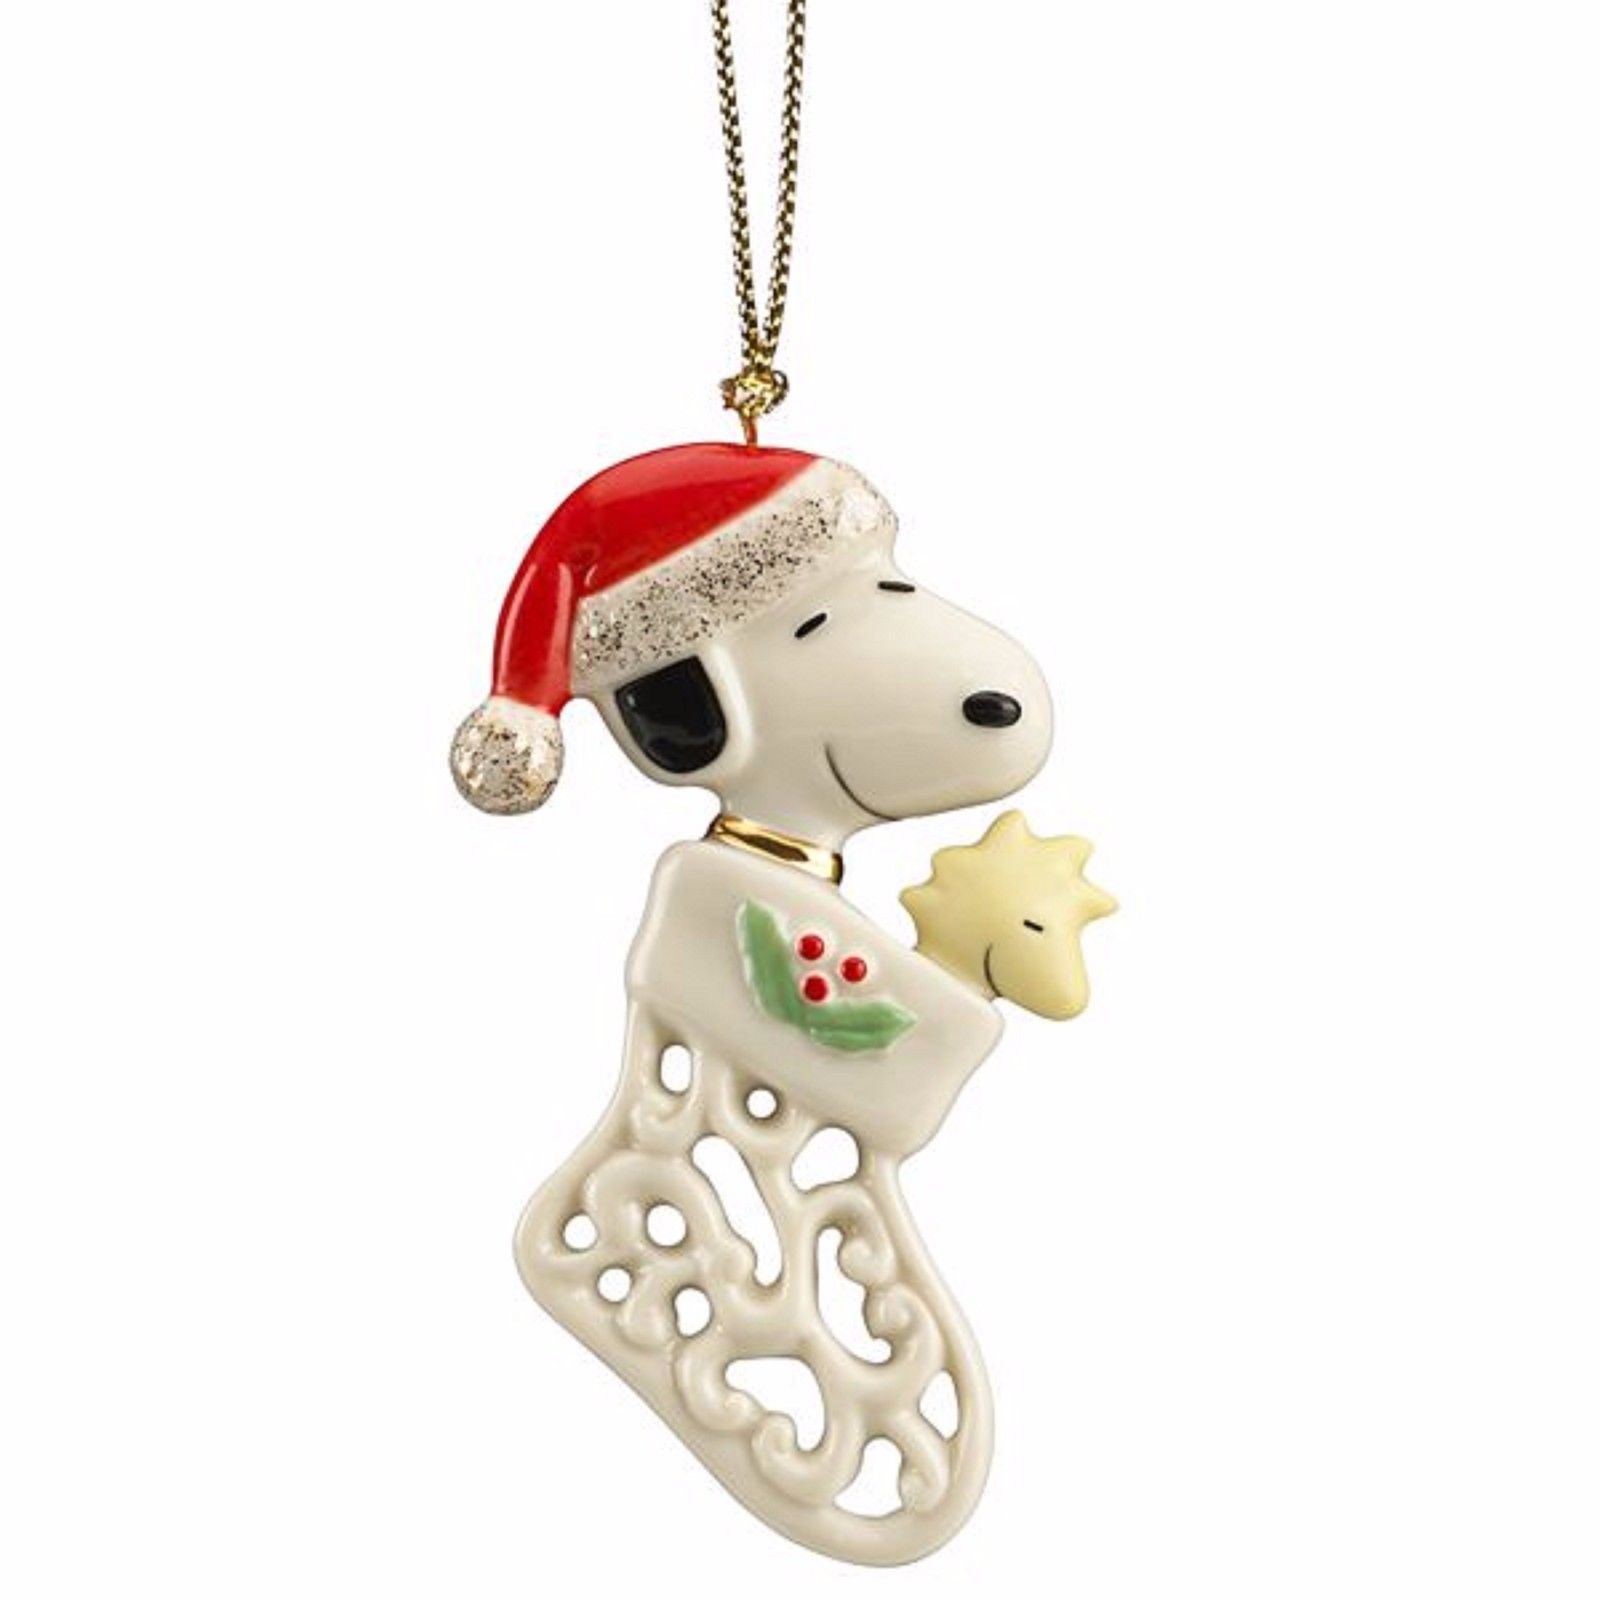 Lenox Peanuts Pierced Snoopy Ornament Woodstock In Stocking Christmas Gift NEW